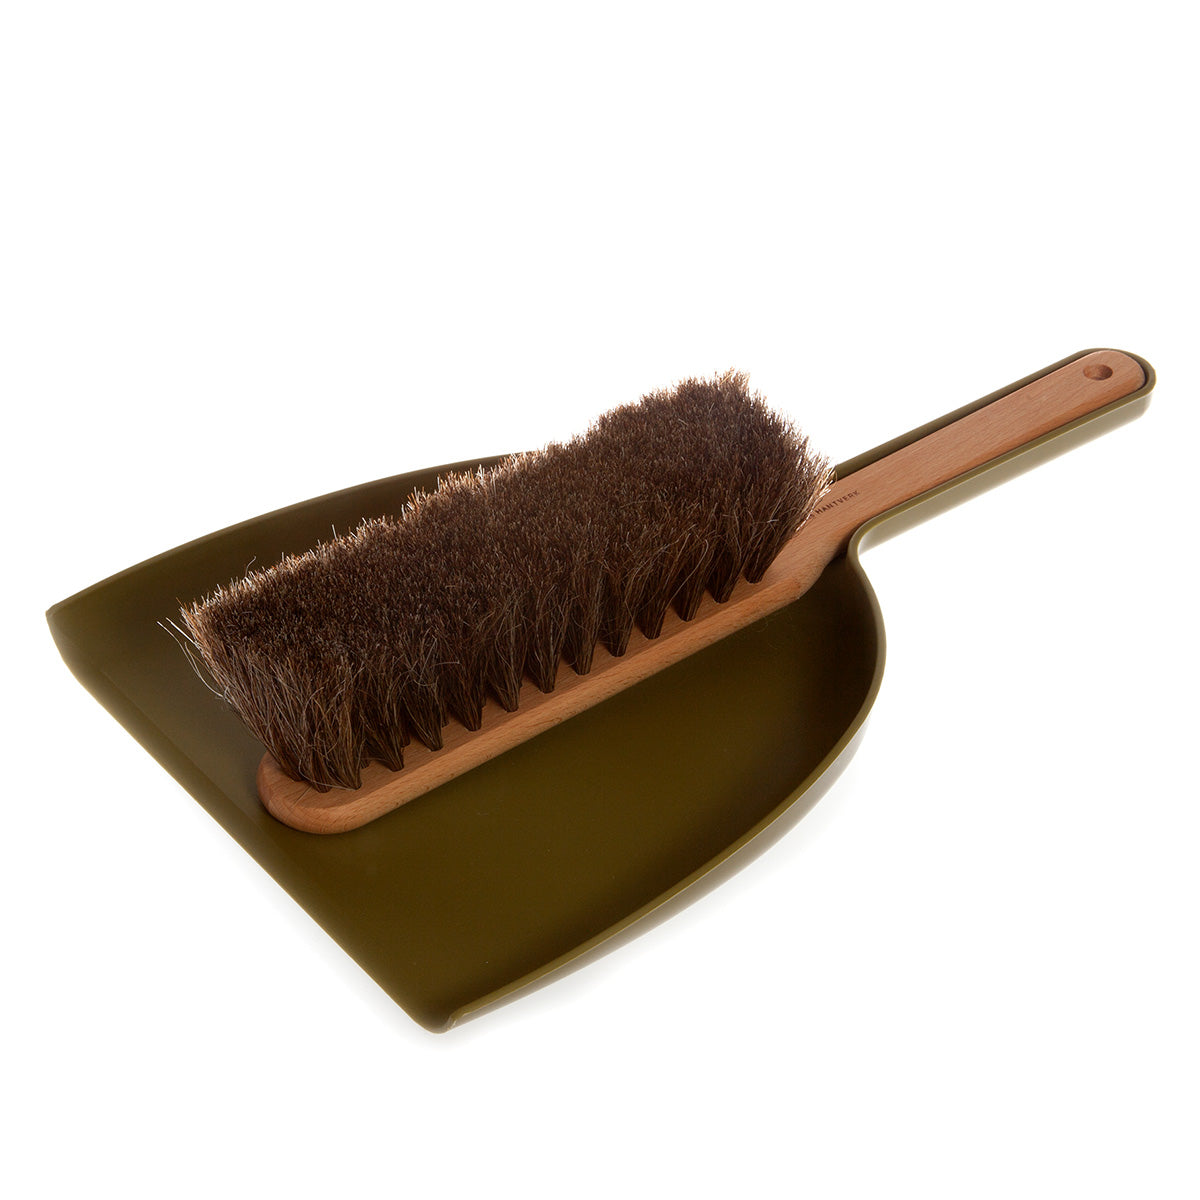 Iris Hantverk - Iris Hantverk Dustpan And Brush Set In Green - Handmade - Beech and Horsehair -Responibly Sourced - Clean Living | Slow Living | Nordic Style | Stylish Kitchen | Natural Materials - Scandinavian Design - Swedish Design